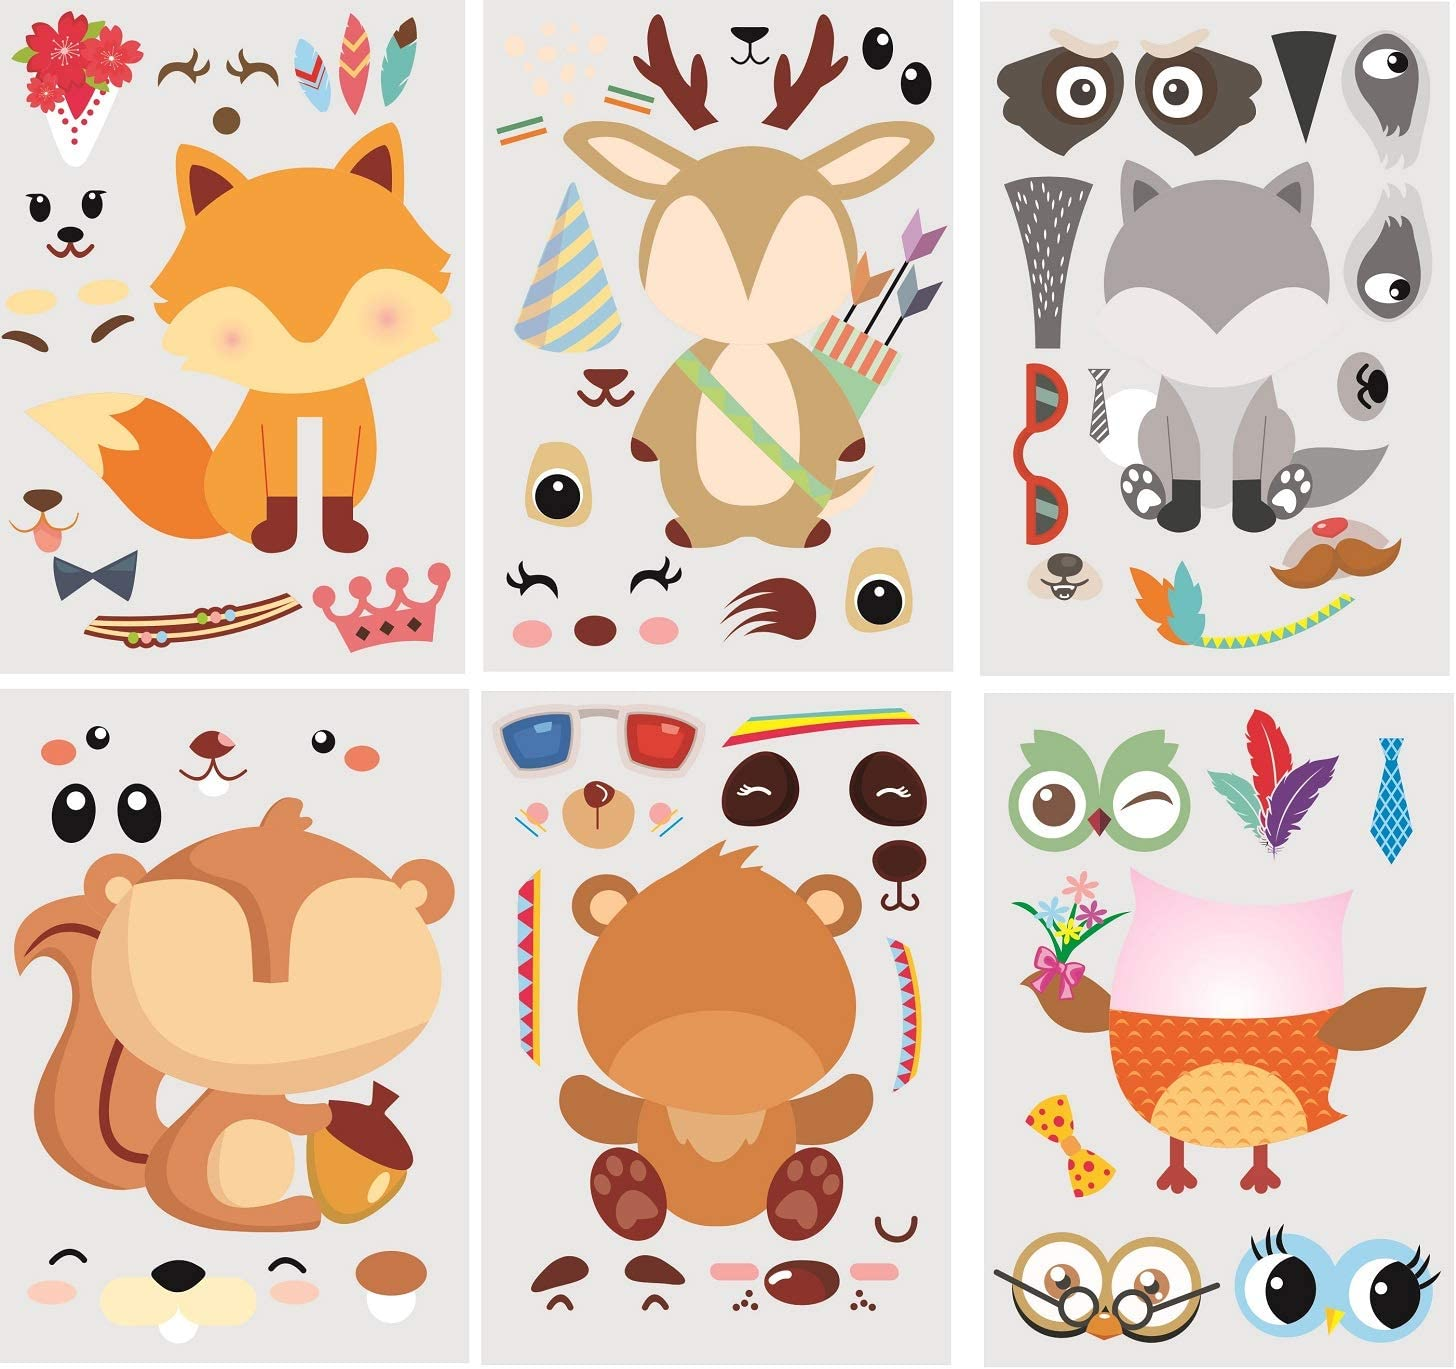 30Pack Make A Woodland Creatures Stickers - Party Supplies for Baby Shower Decorations & Birthday Party Supplies, Woodland Animals Include Fox, Owl, Bear, Squirrel, Deer, Raccoon (Woodland)